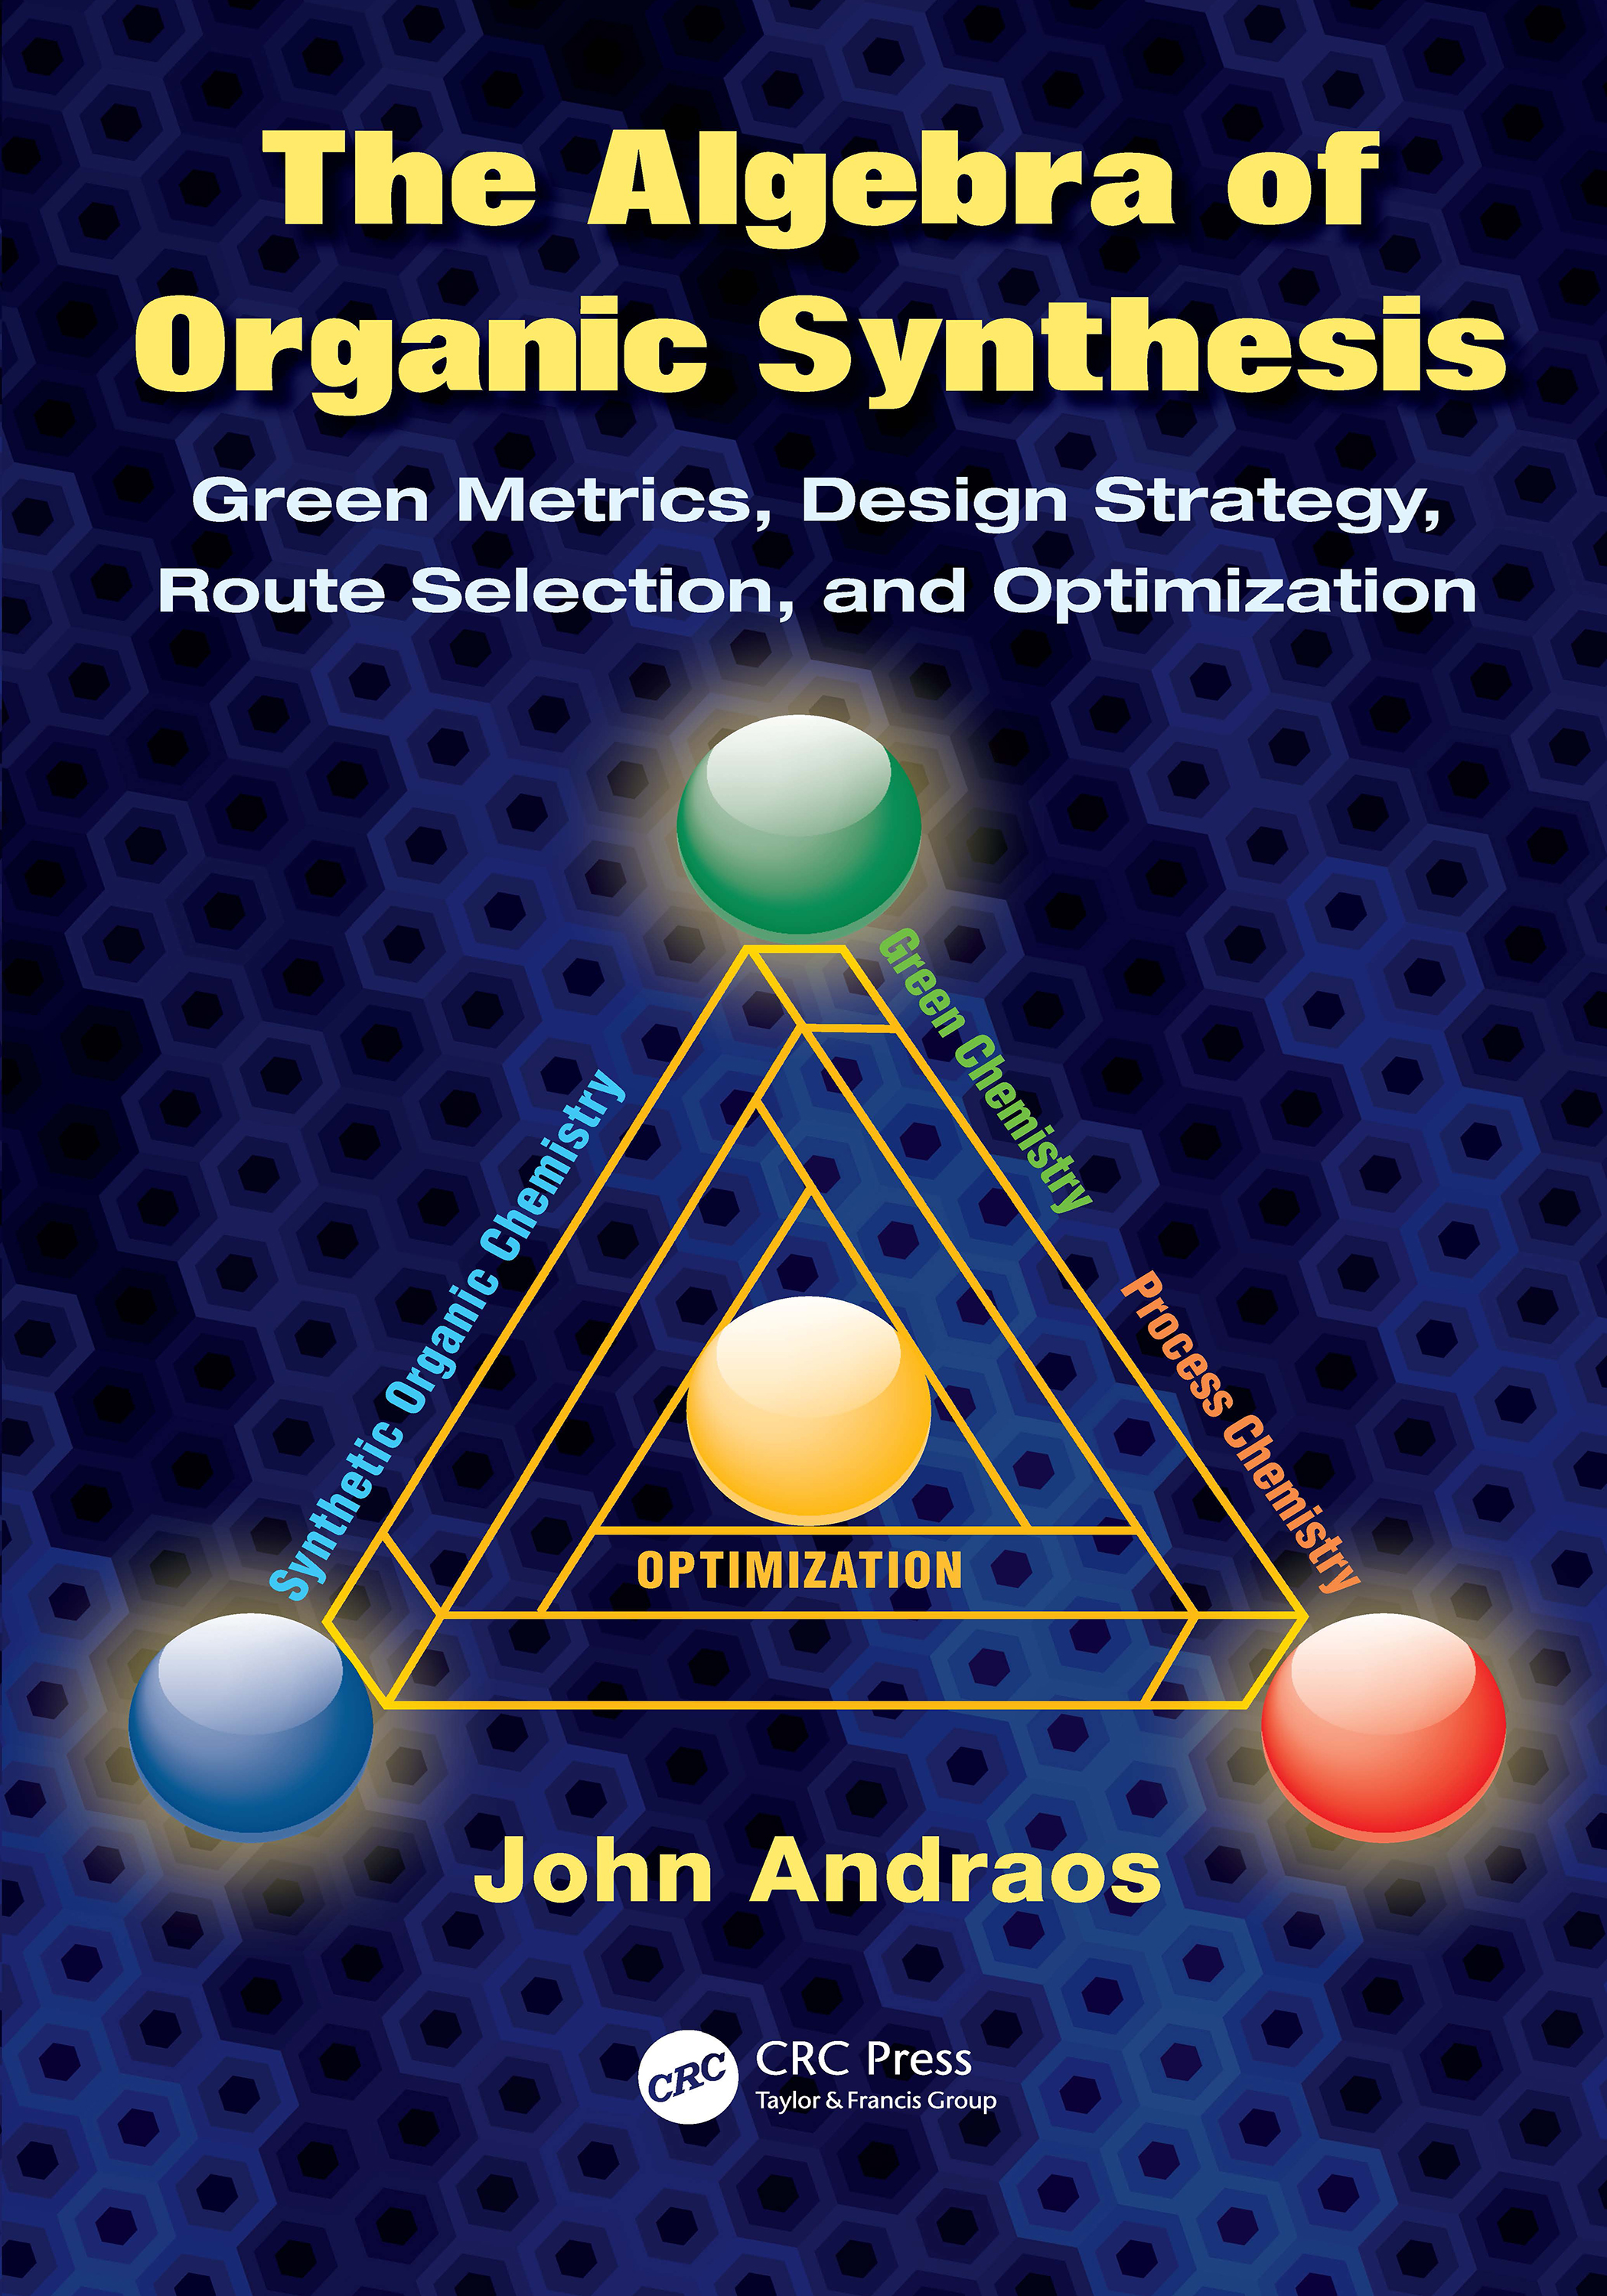 The Algebra of Organic Synthesis